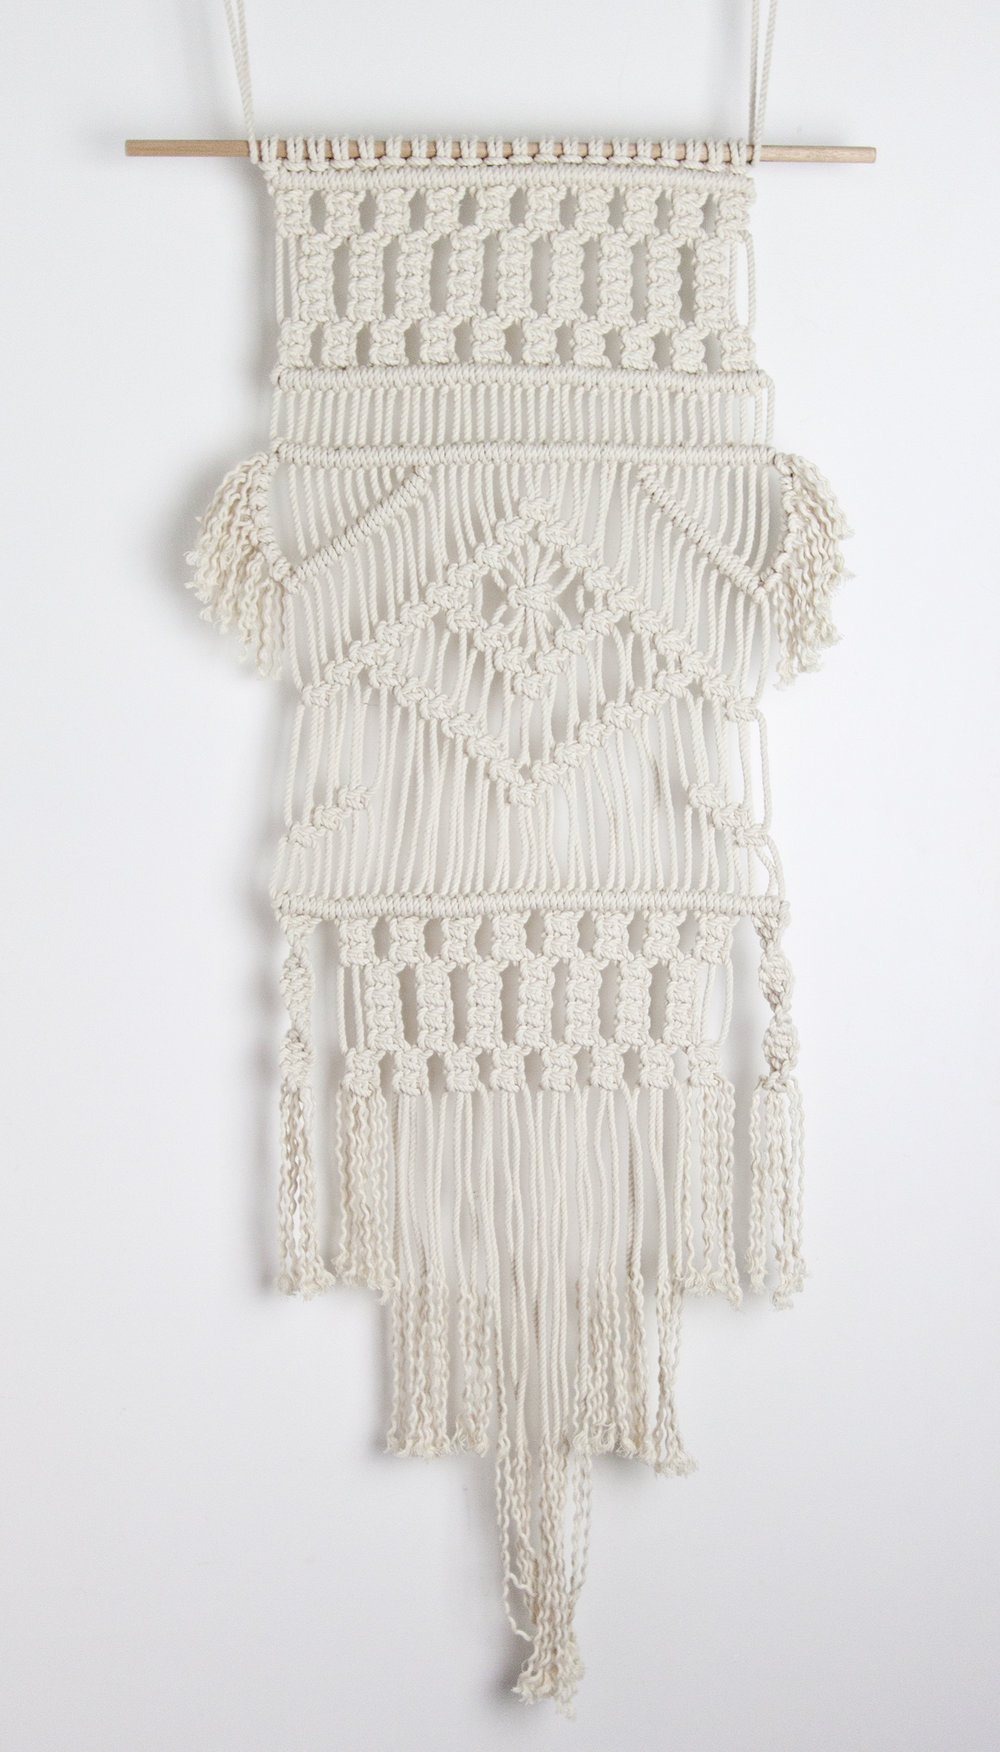 Macrame Workshop with Madi Young